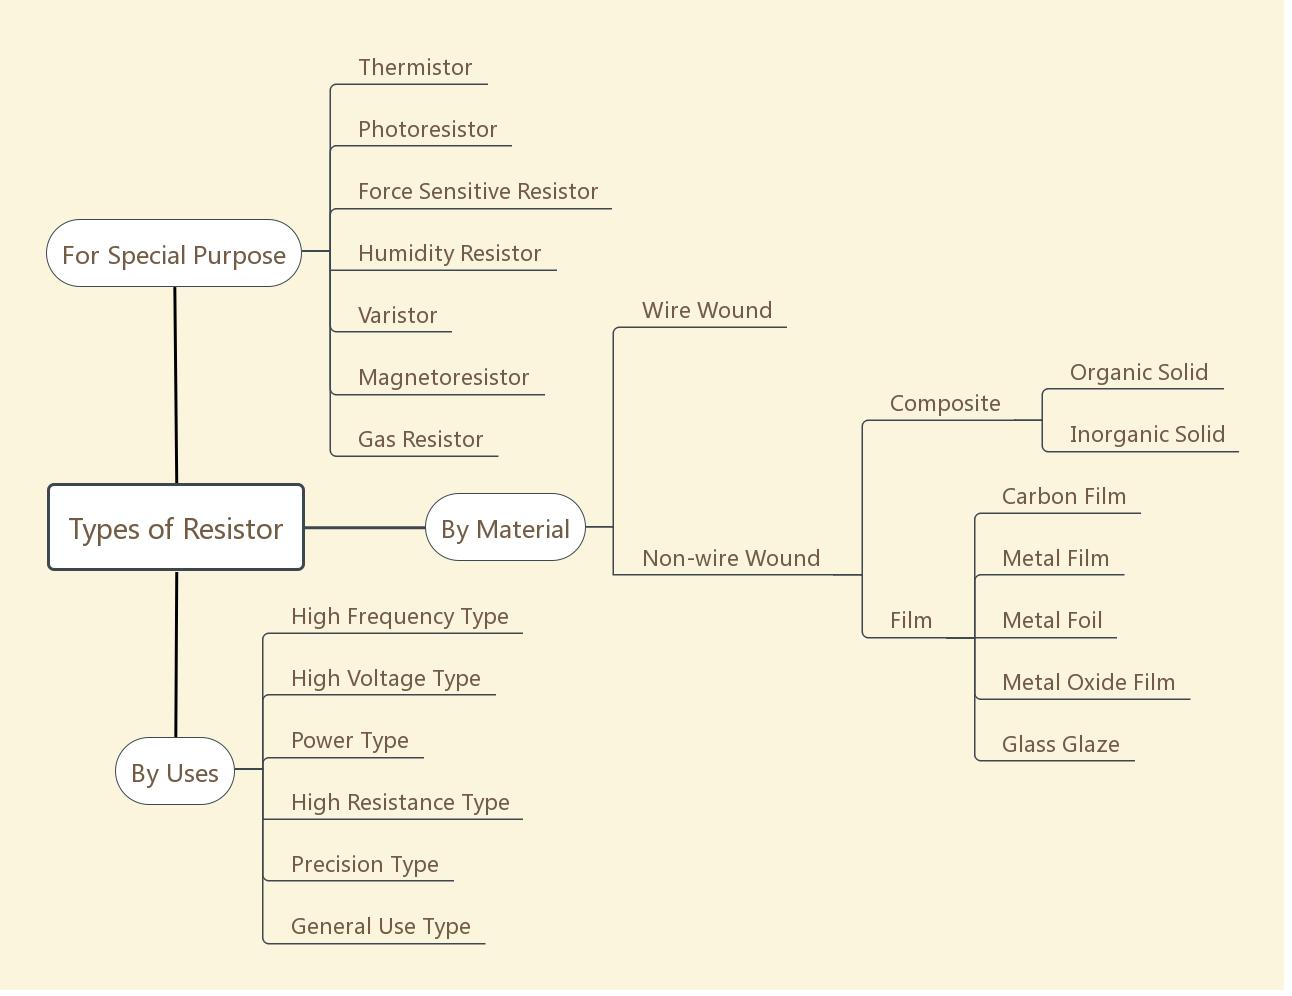 Mind Map of Types of Resistor